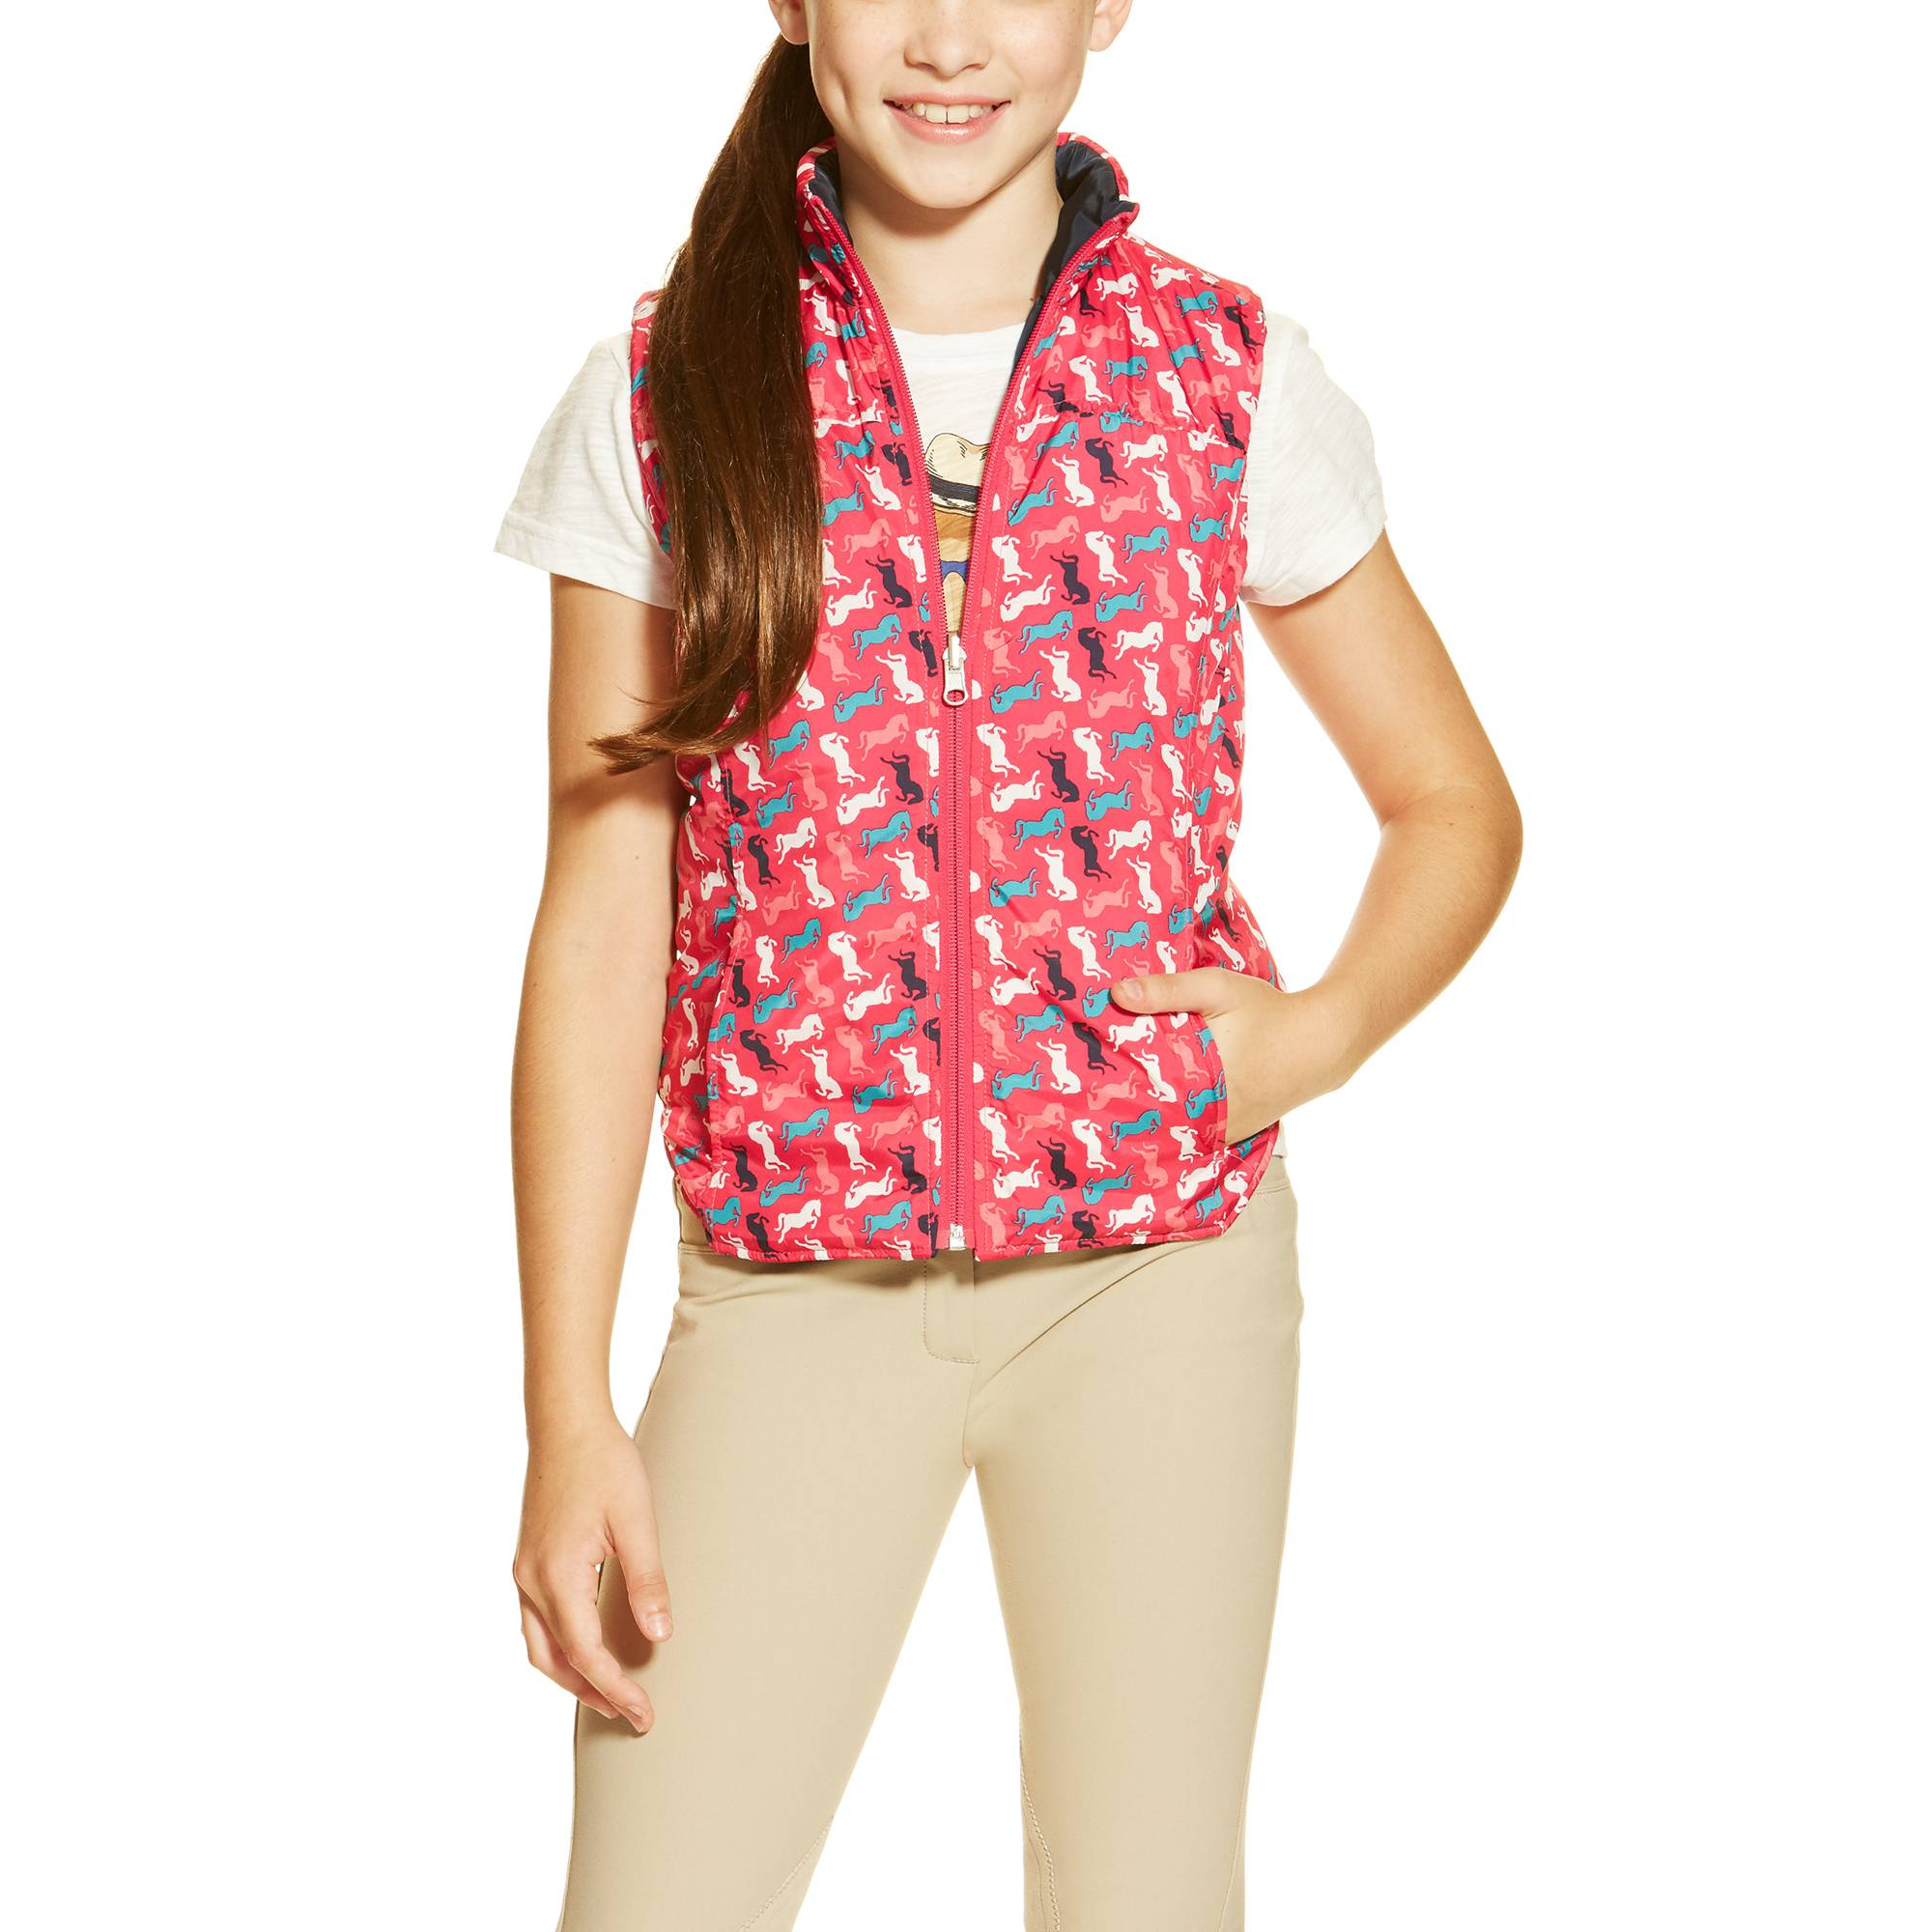 Ariat Emma Vest - Girls - Multi